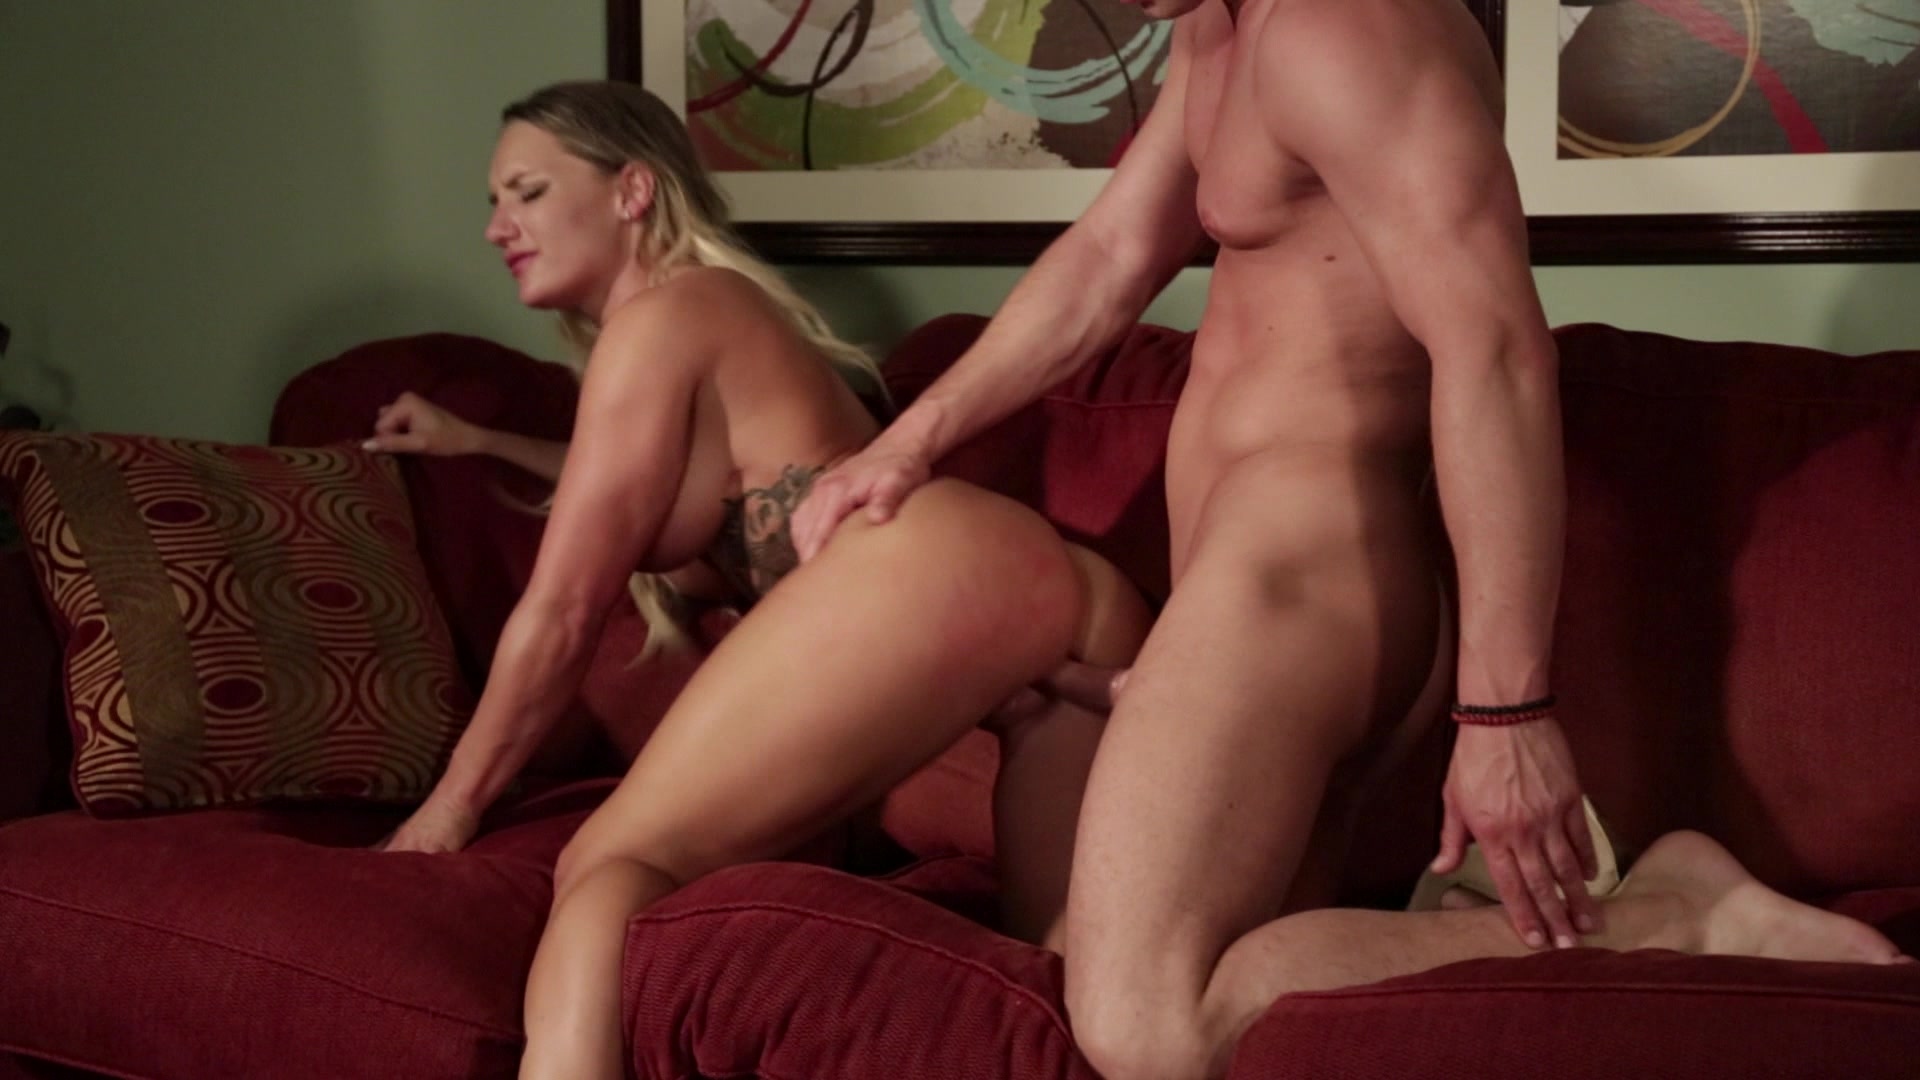 Scene with Cali Carter - image 12 out of 20